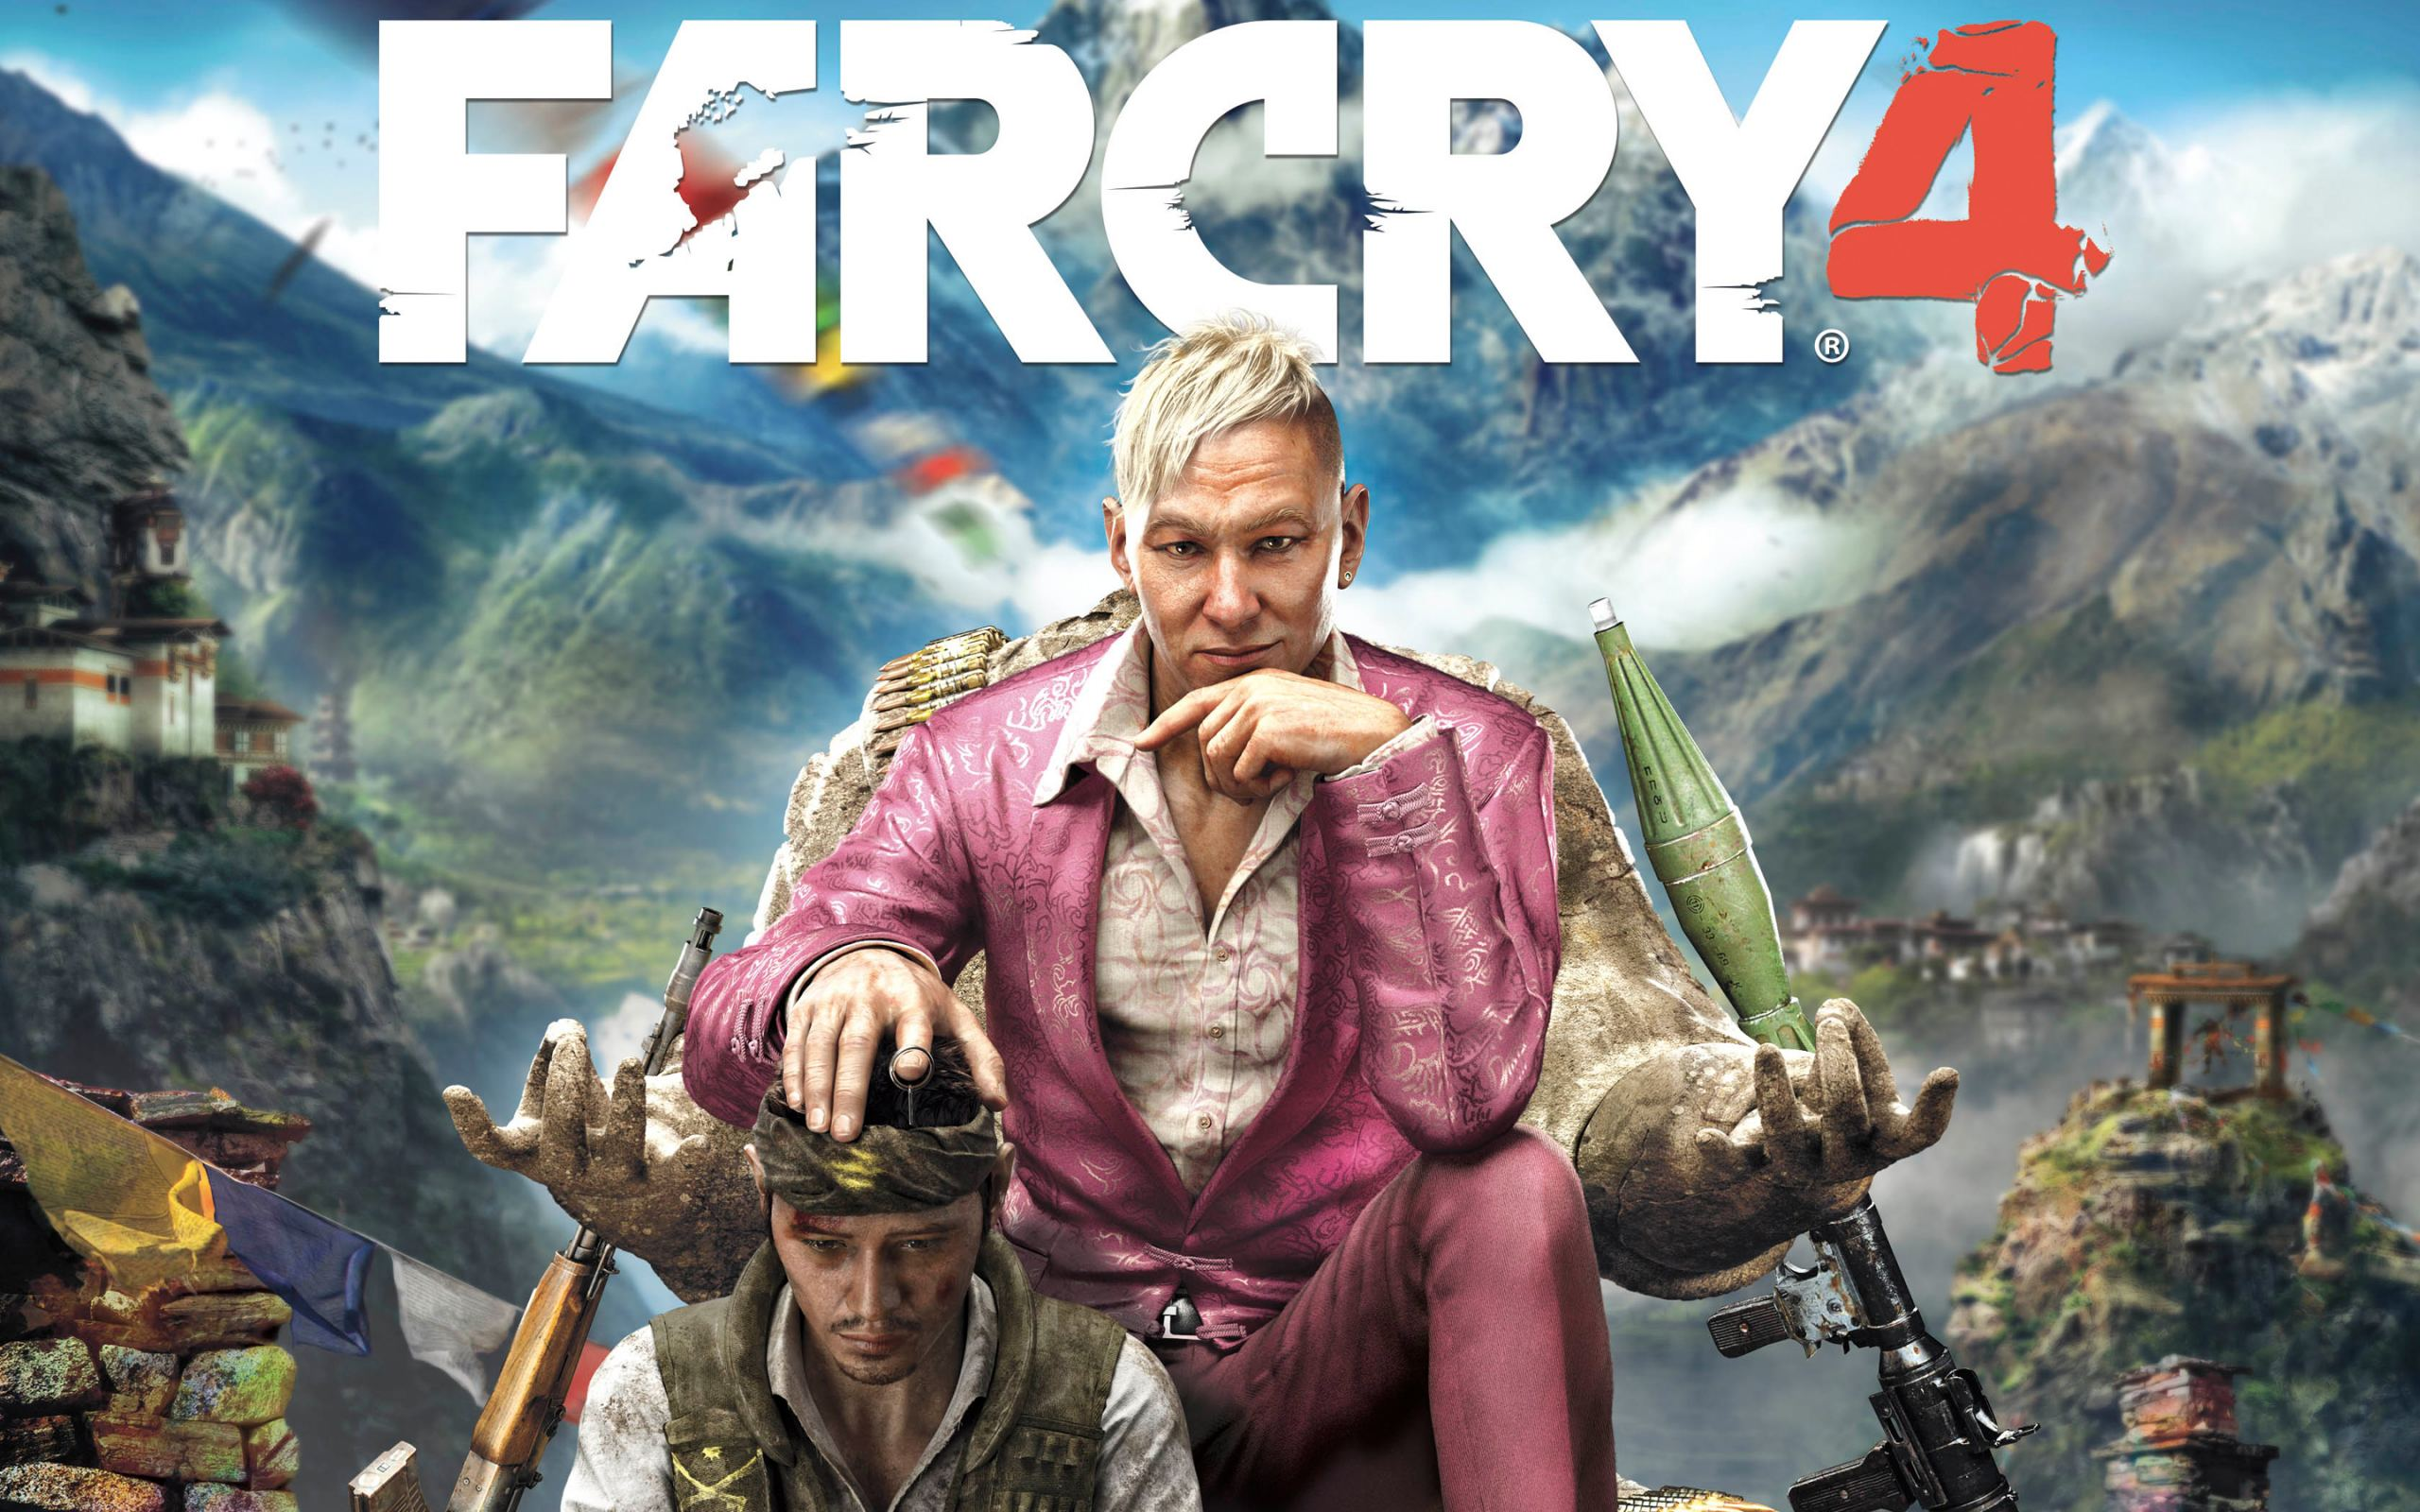 Far Cry 4 wallpaper, Фар край, 2560 на 1600 пикселей